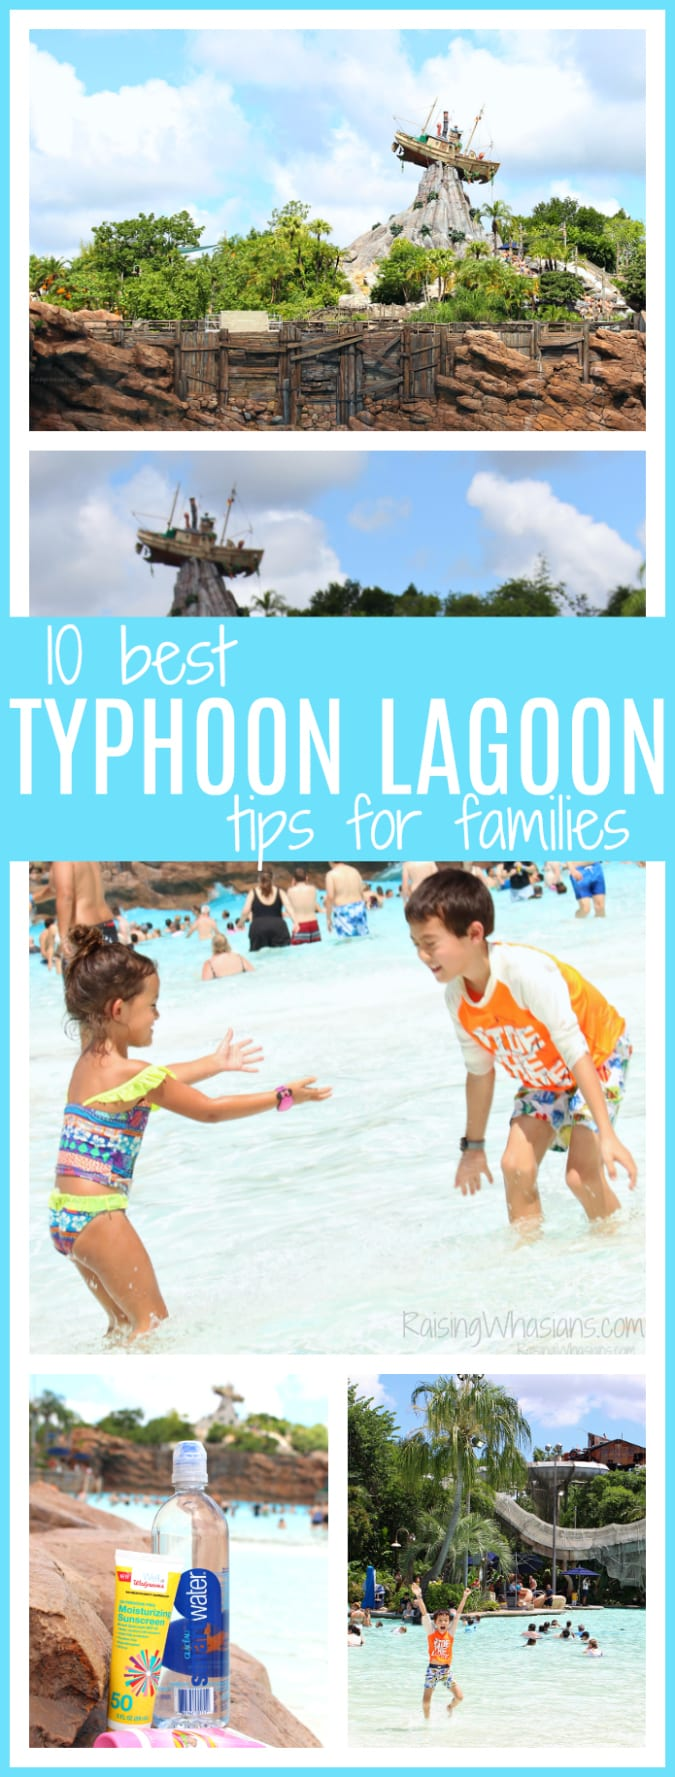 Best typhoon lagoon tips for families